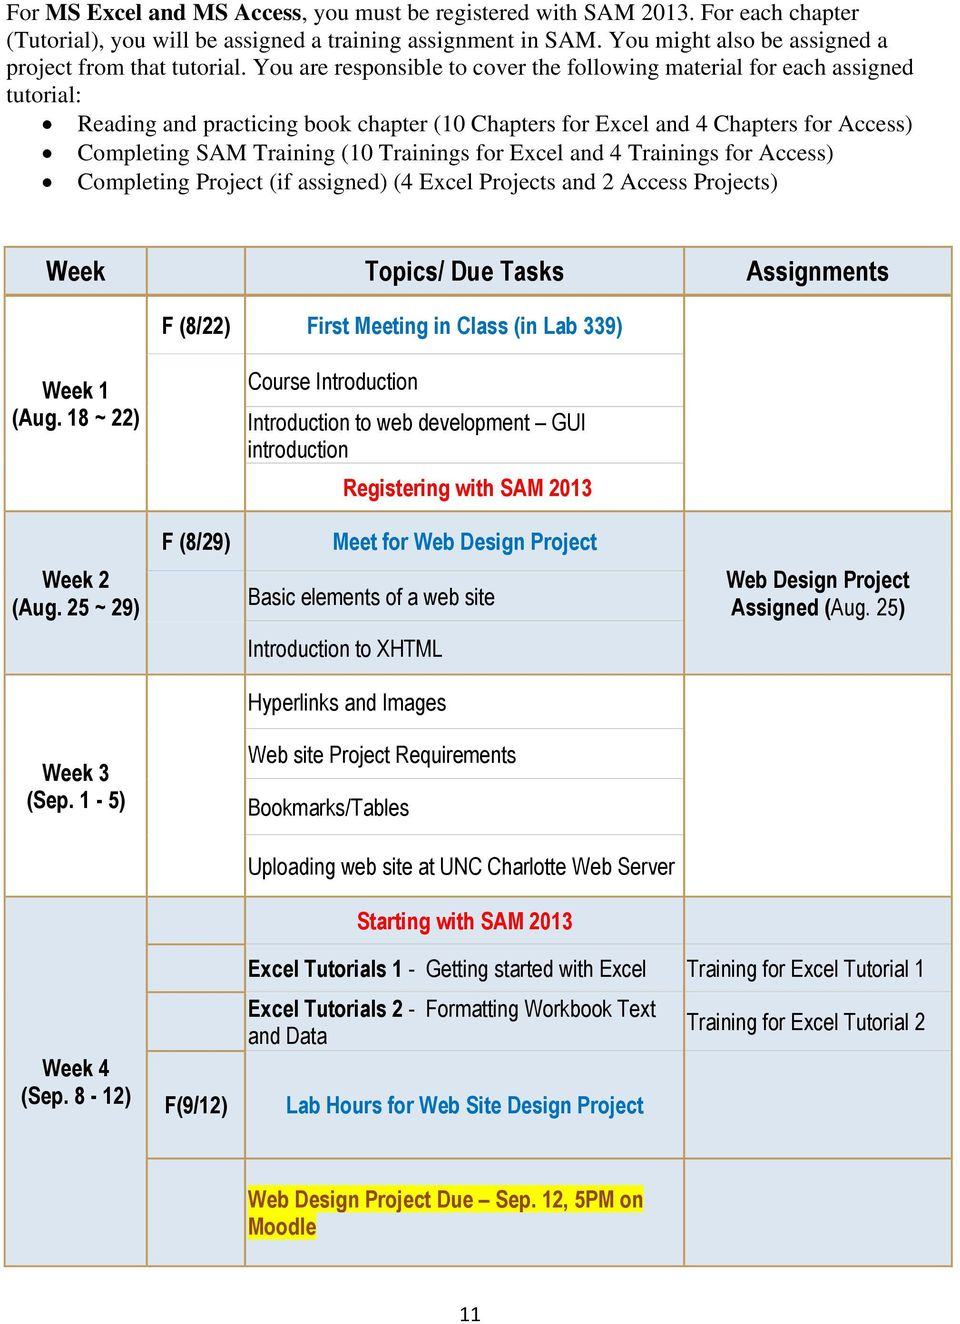 You are responsible to cover the following material for each assigned tutorial: Reading and practicing book chapter (10 Chapters for Excel and 4 Chapters for Access) Completing SAM Training (10